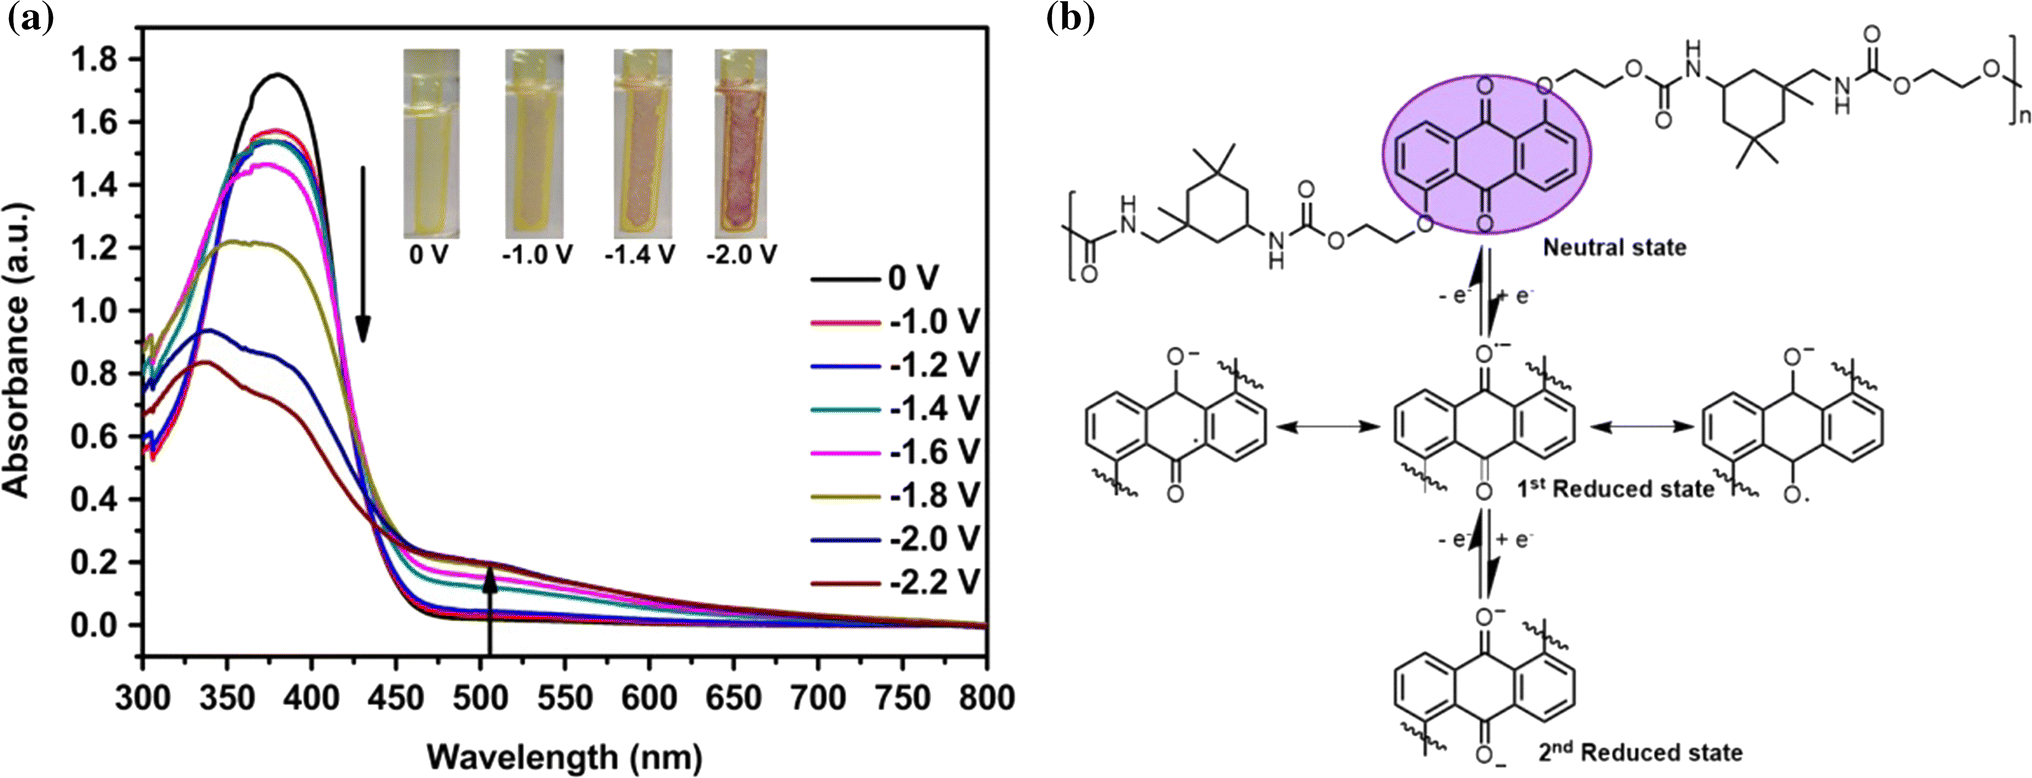 Anthraquinone Functionalized Polyurethane Designed For Polymer Vacuum Flash Ox 500 Open Image In New Window